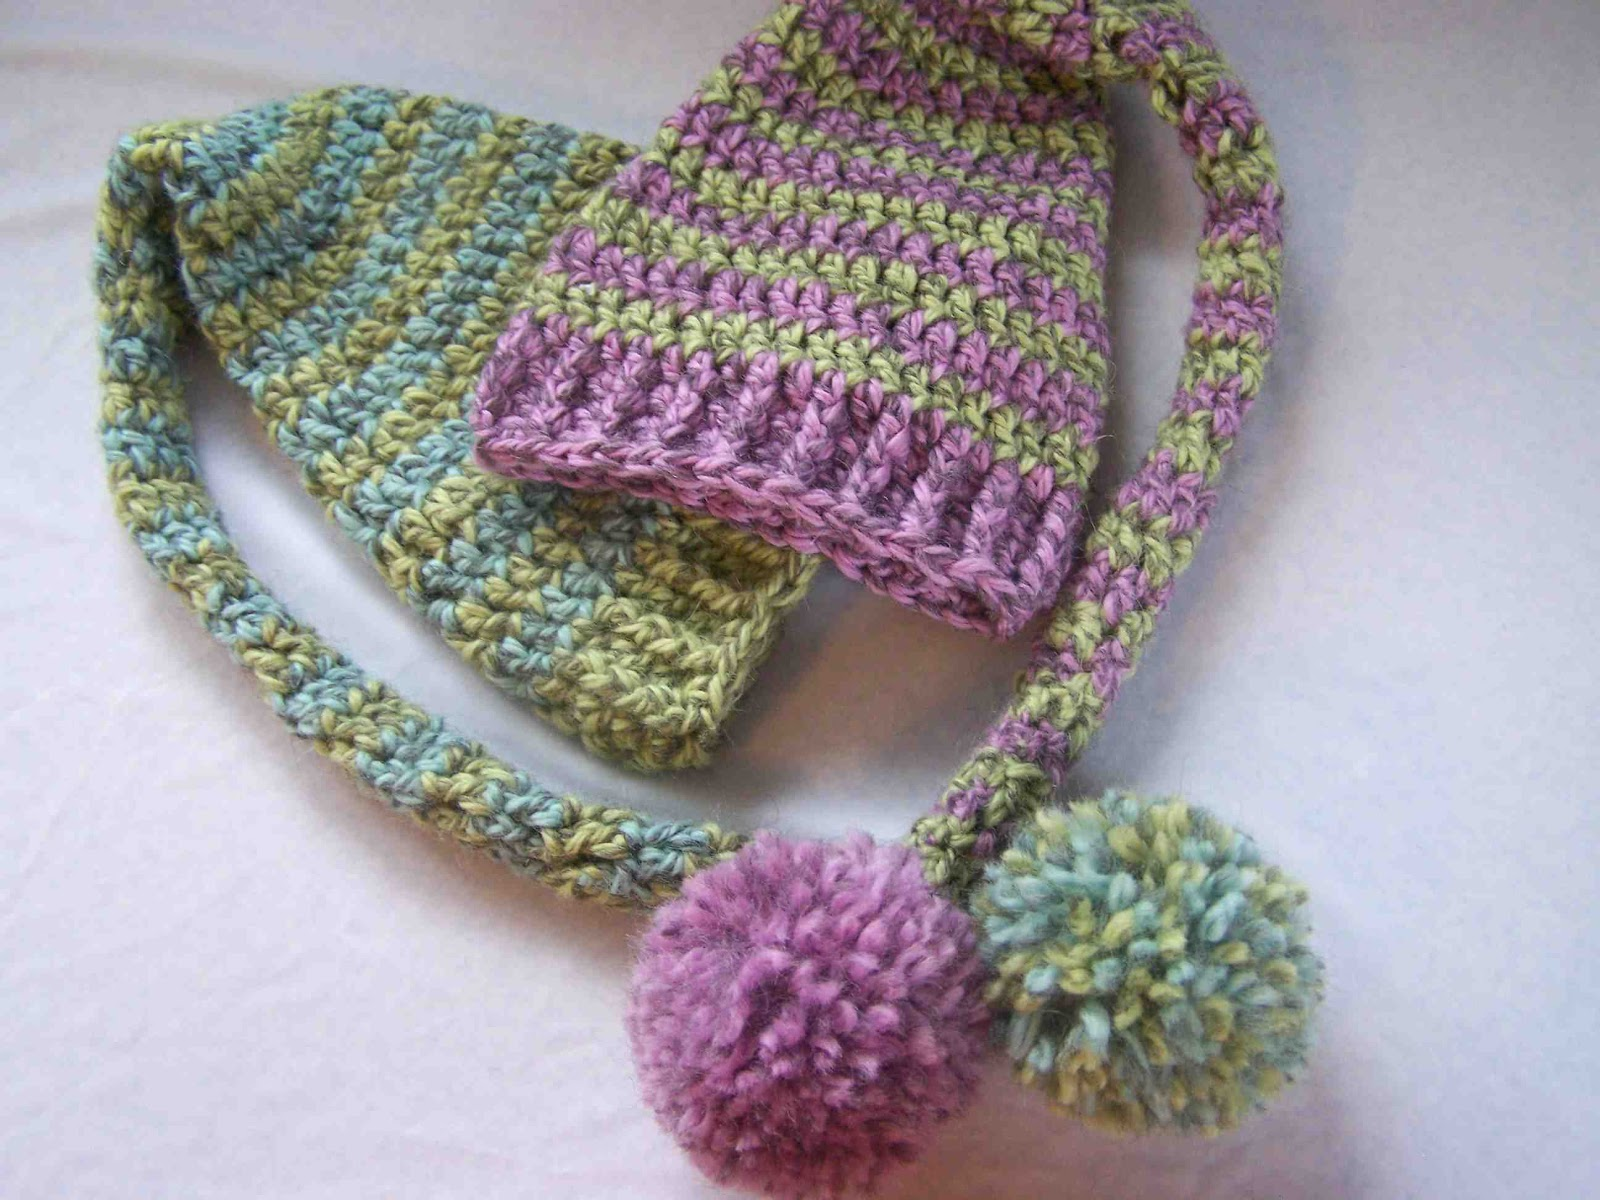 Crochet Baby Hat Pattern Beginner : Made by Me. Shared with you.: Beginners Crochet: Baby Elf Hats